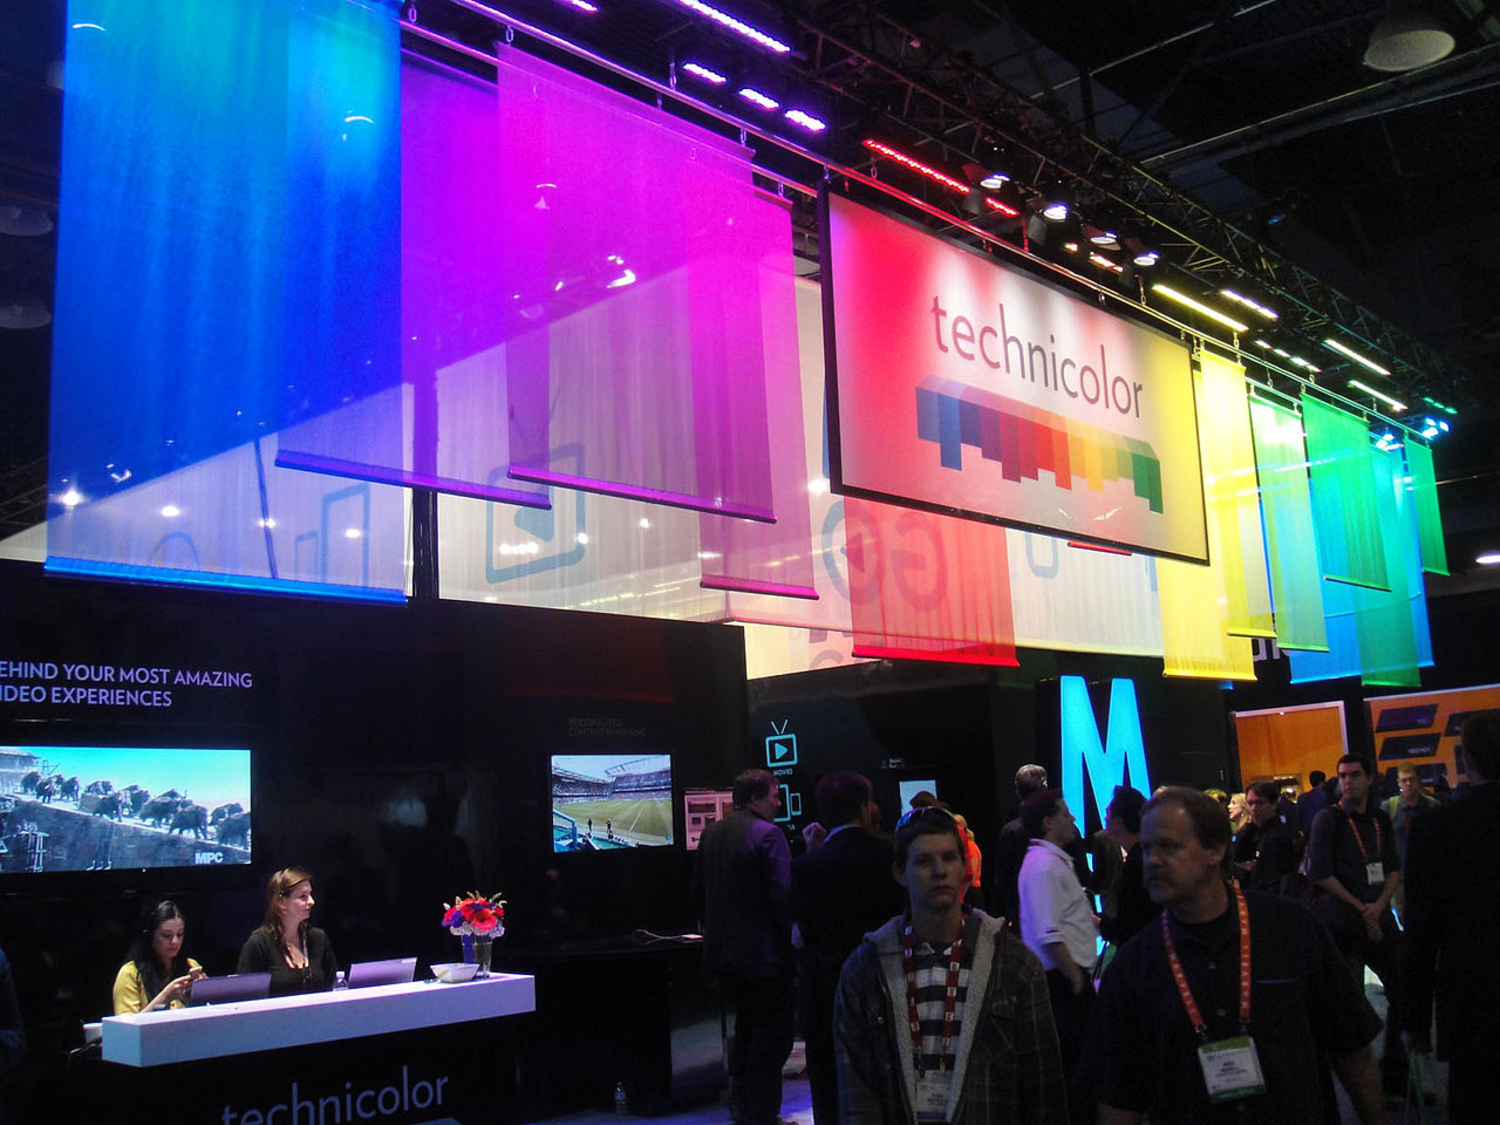 What You Should Know About CES 2017 So Far